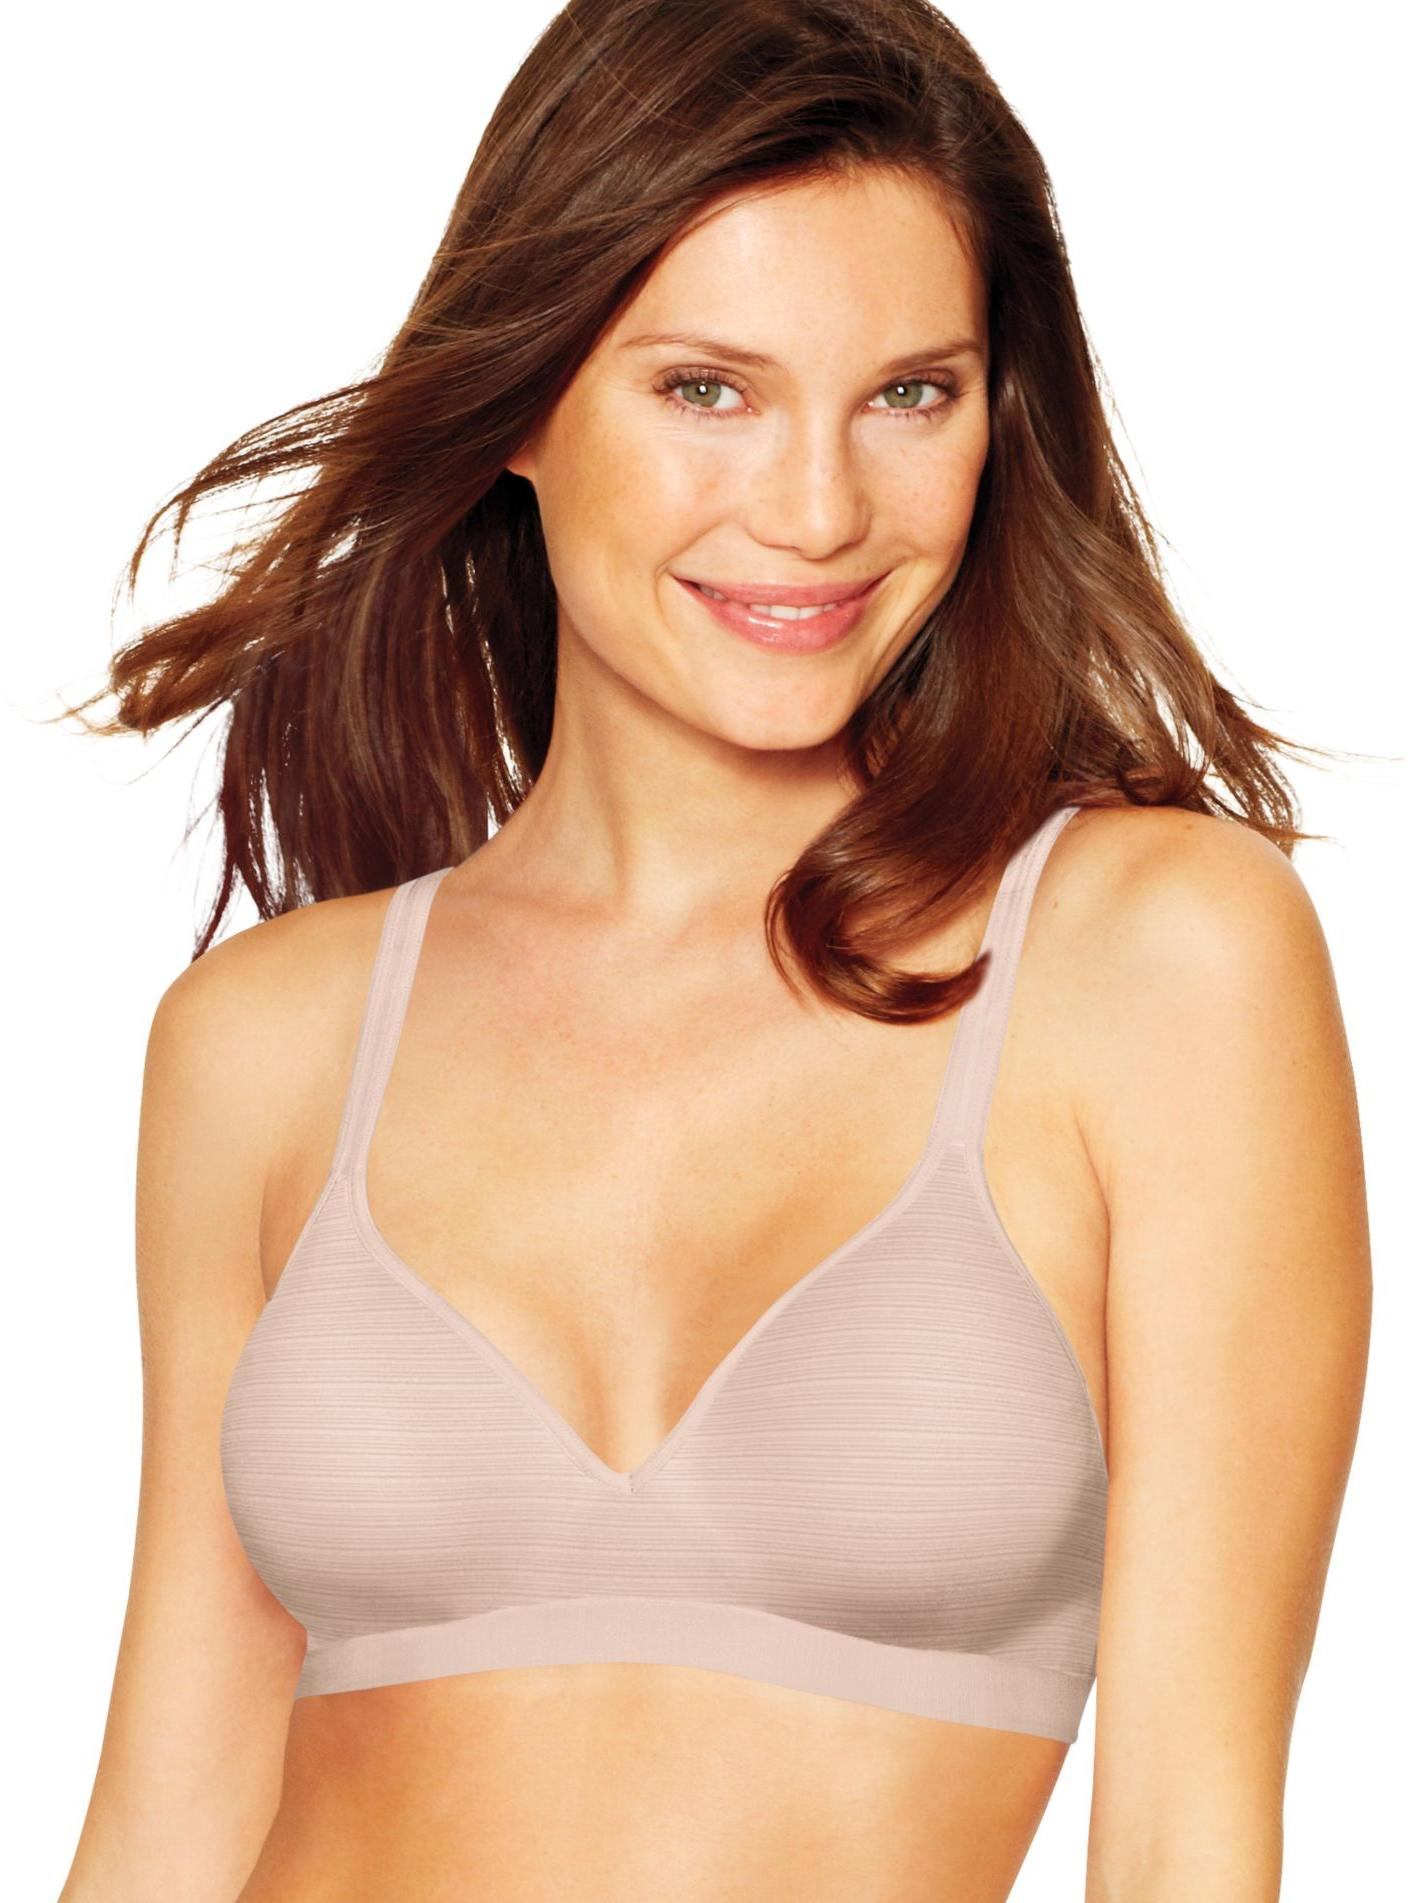 Barely there invisible look underwire bra 4104 ebay 1500 183 1903